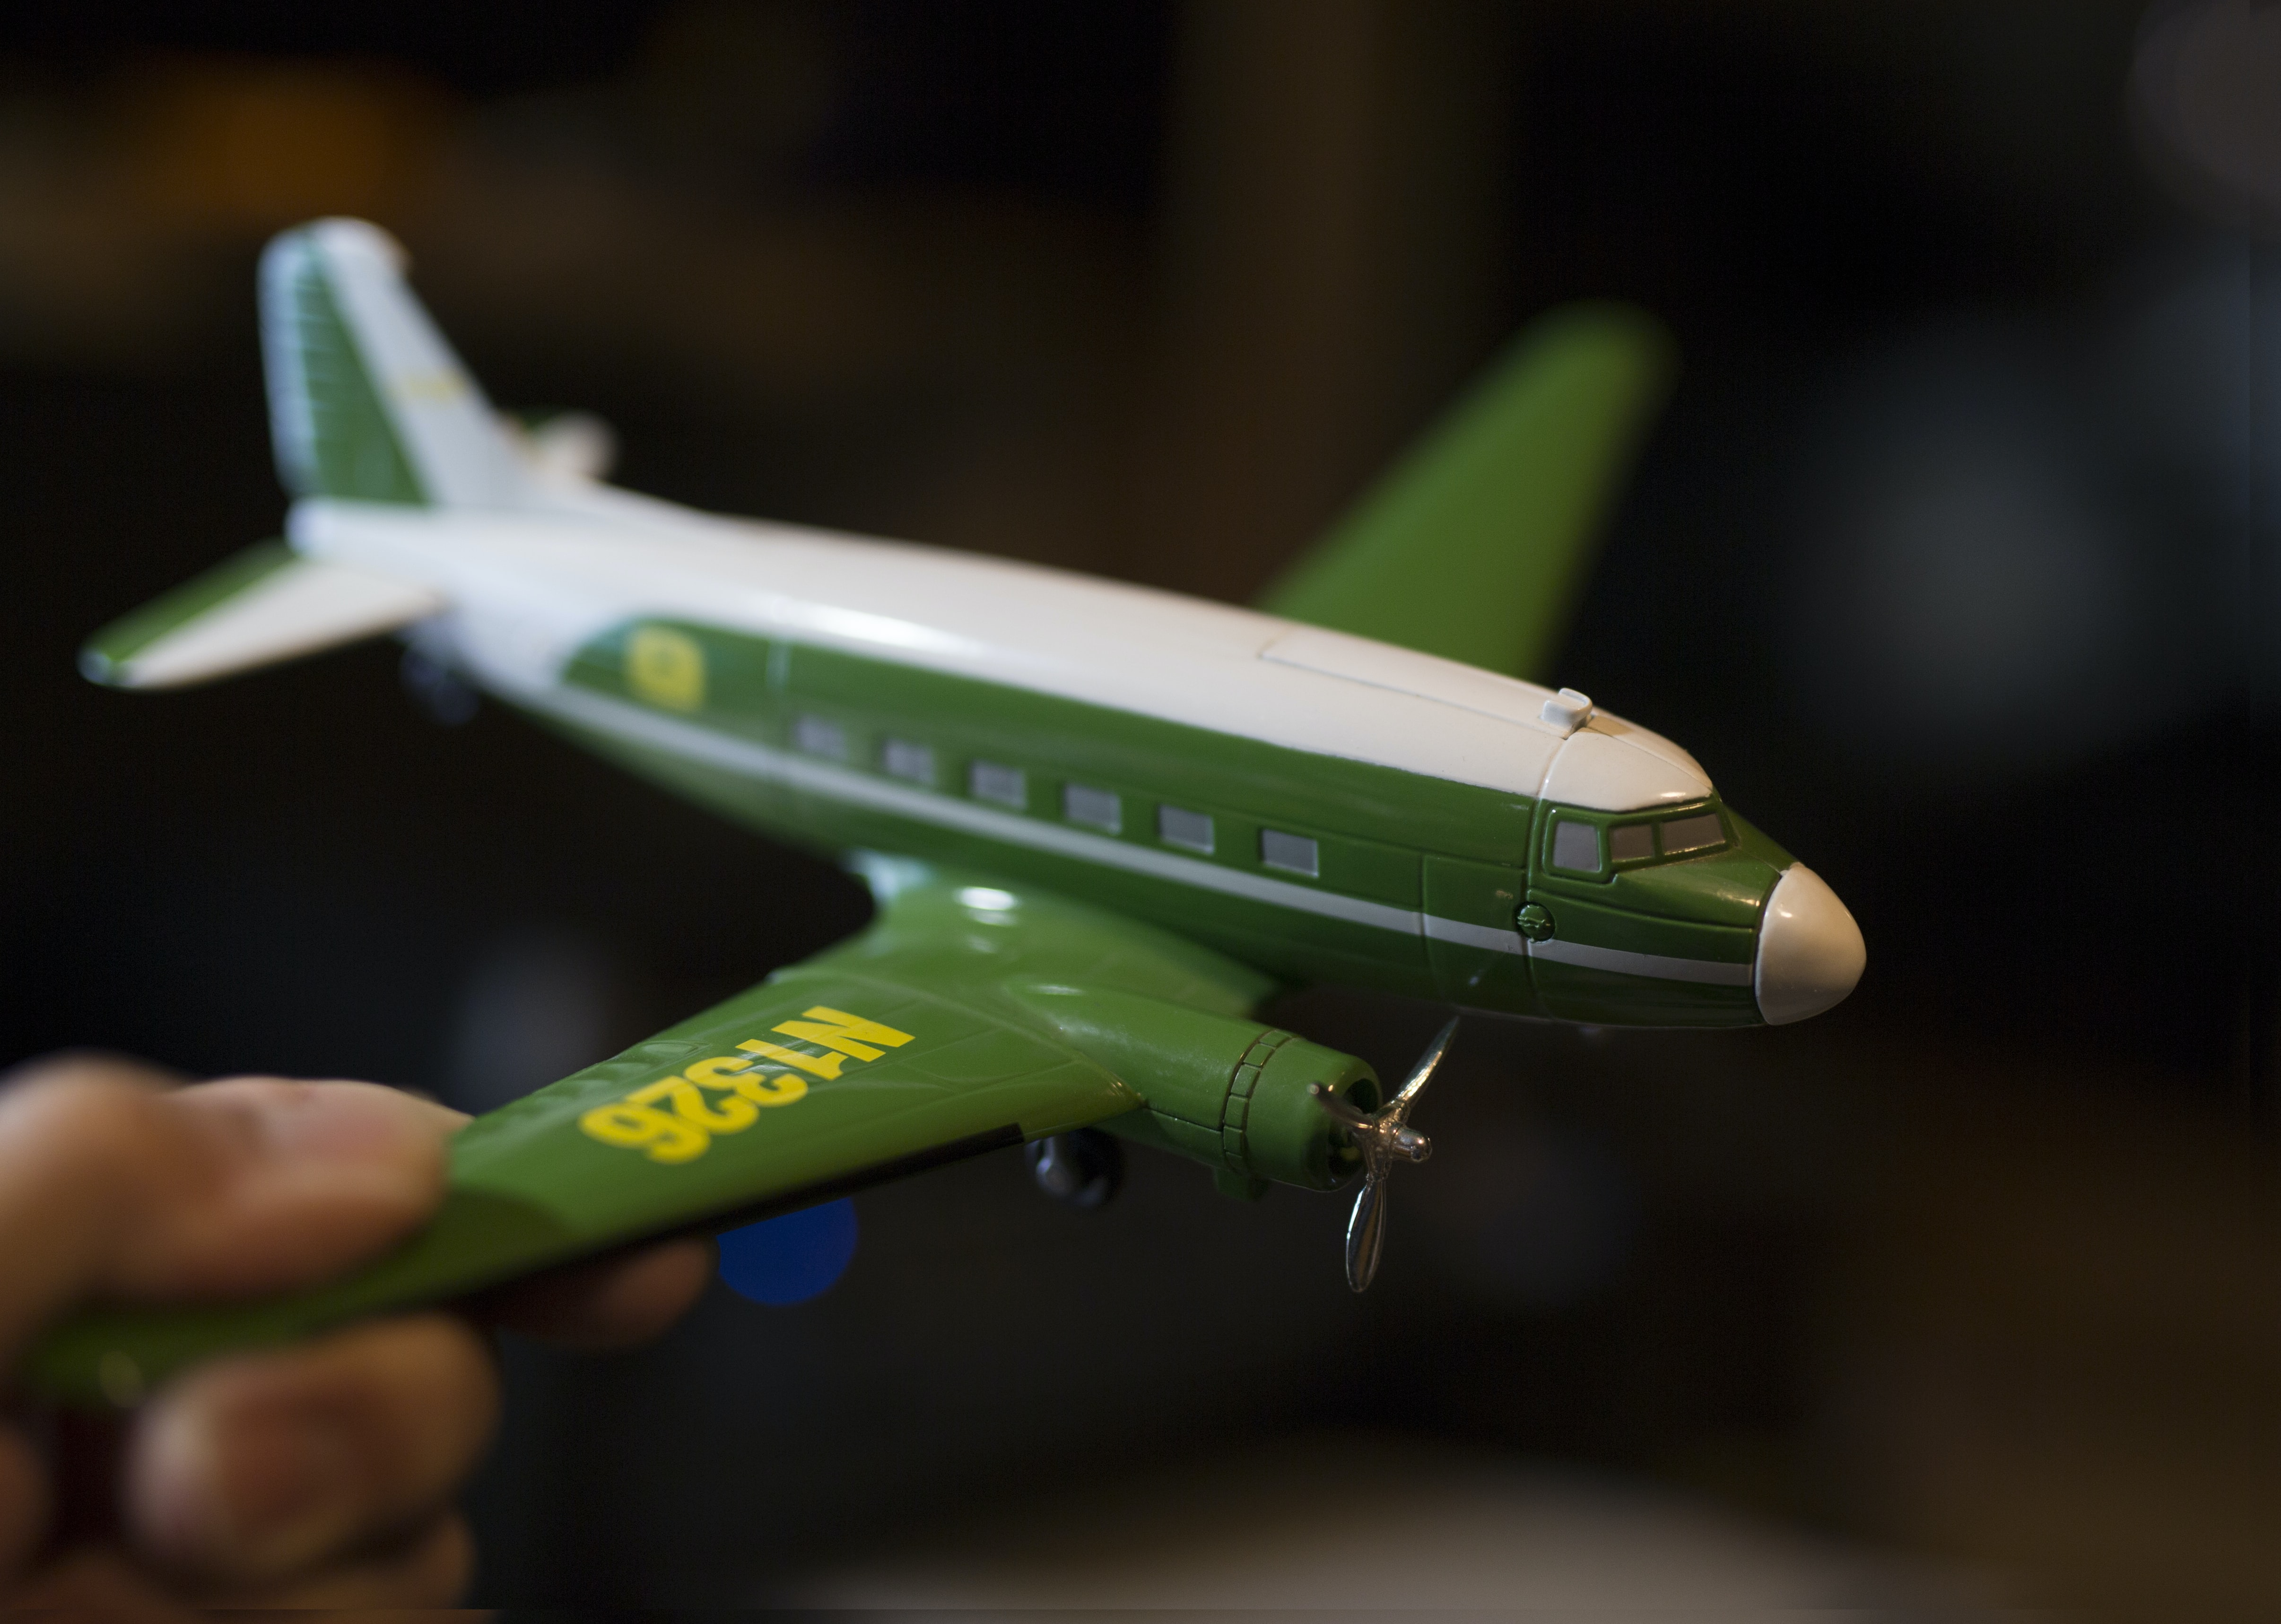 green and white helicopter toy